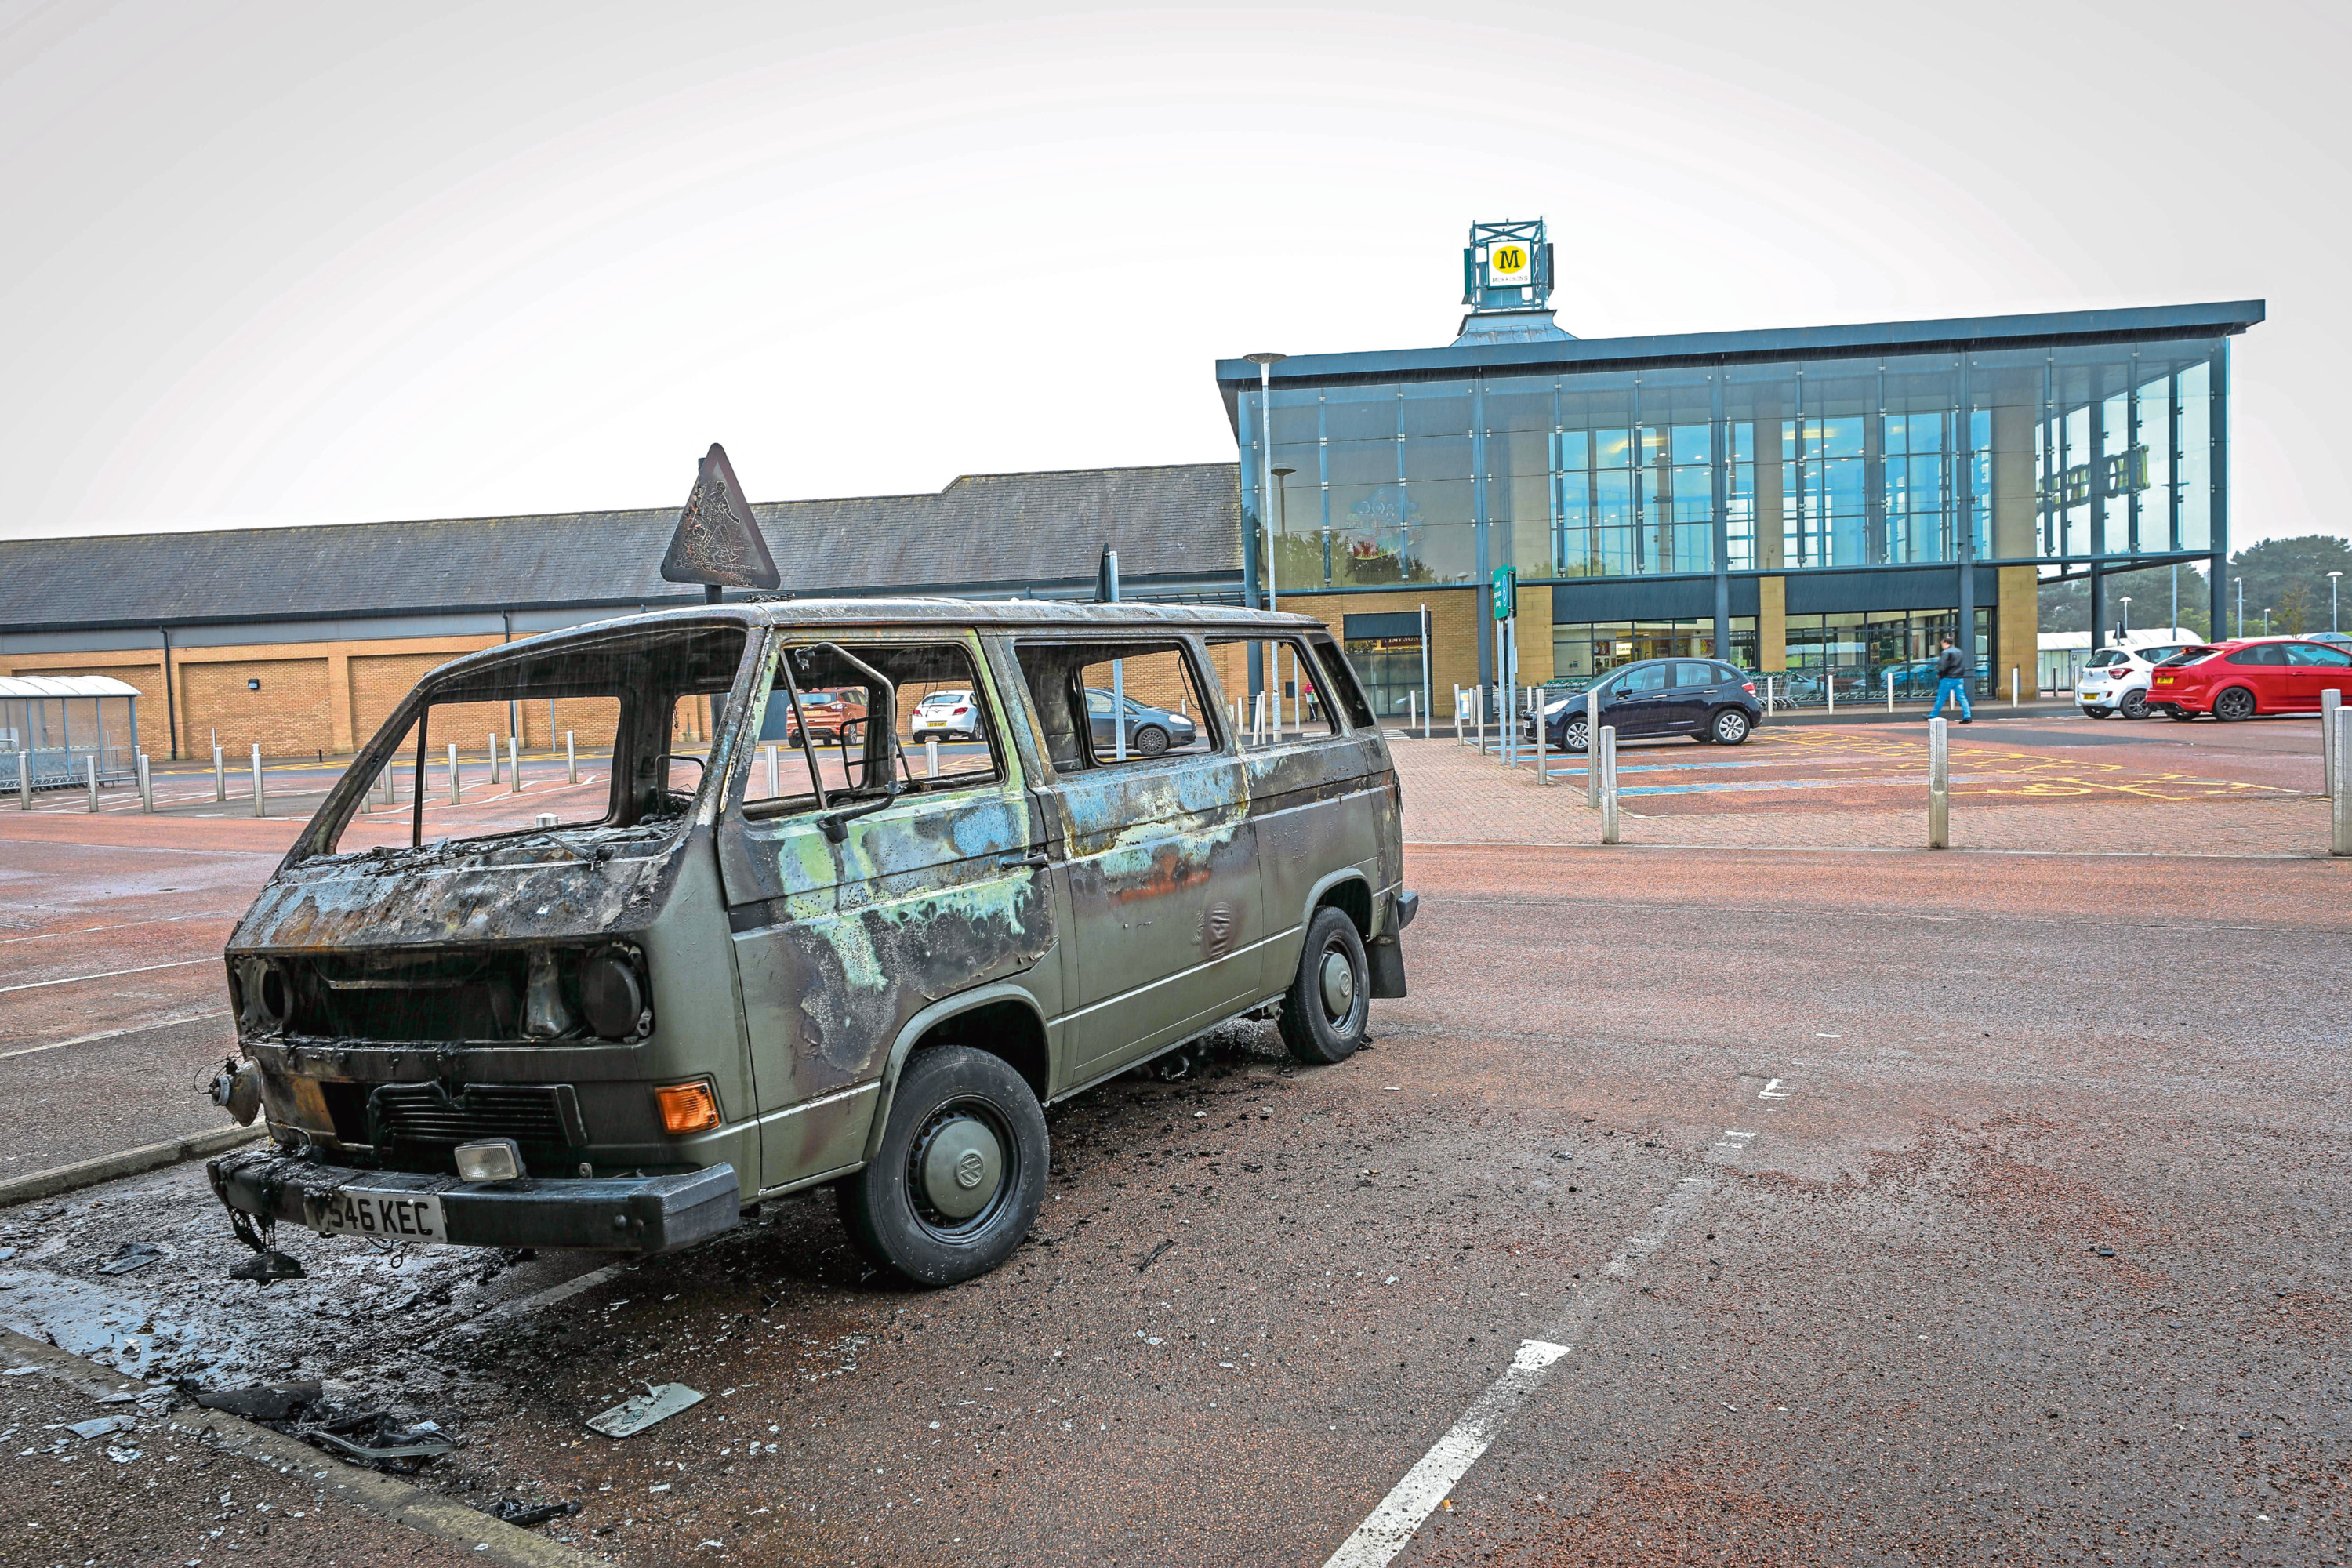 Remains of a VW Camper Van burnt out in the car park.